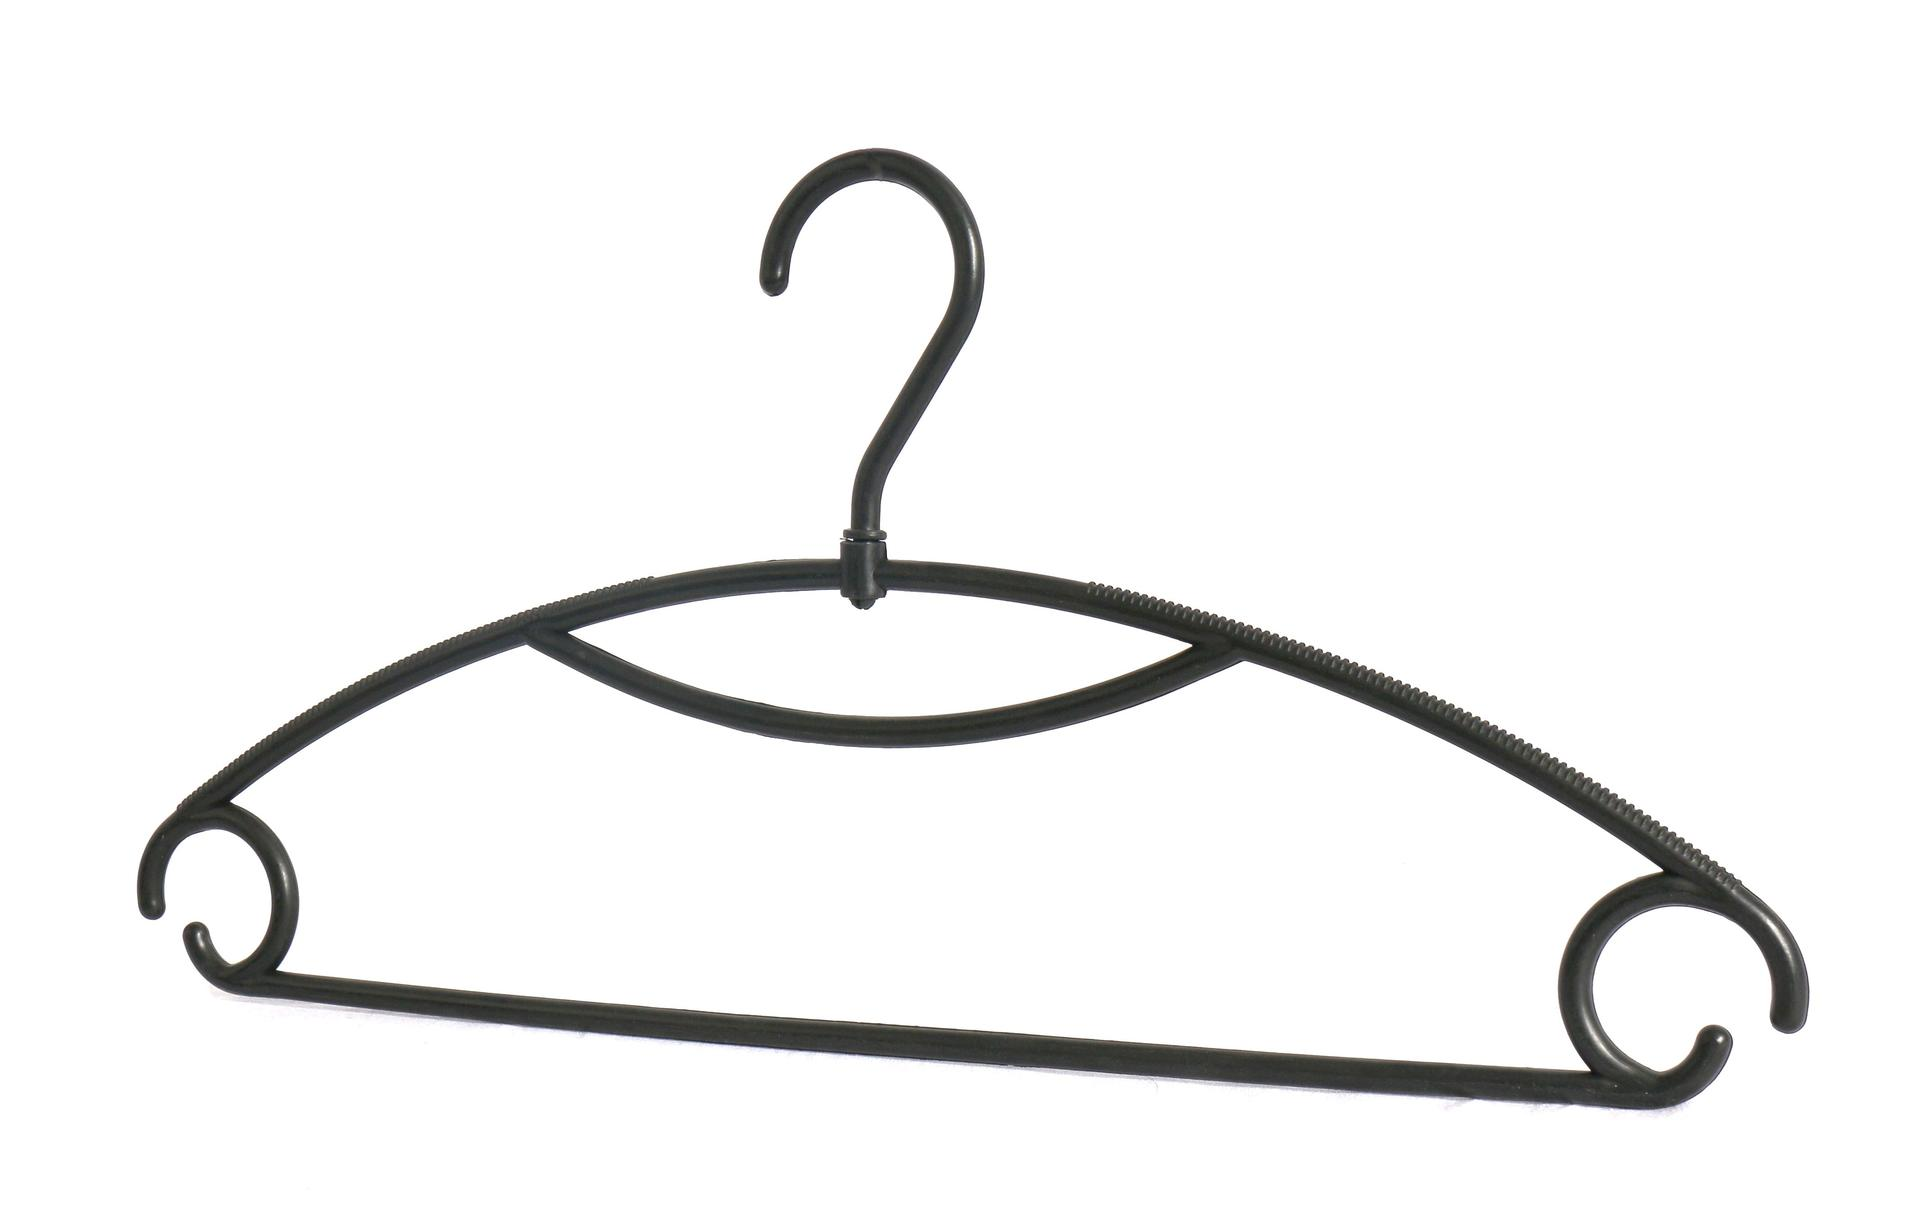 Black Plastic Clothing Hanger for Supermarket